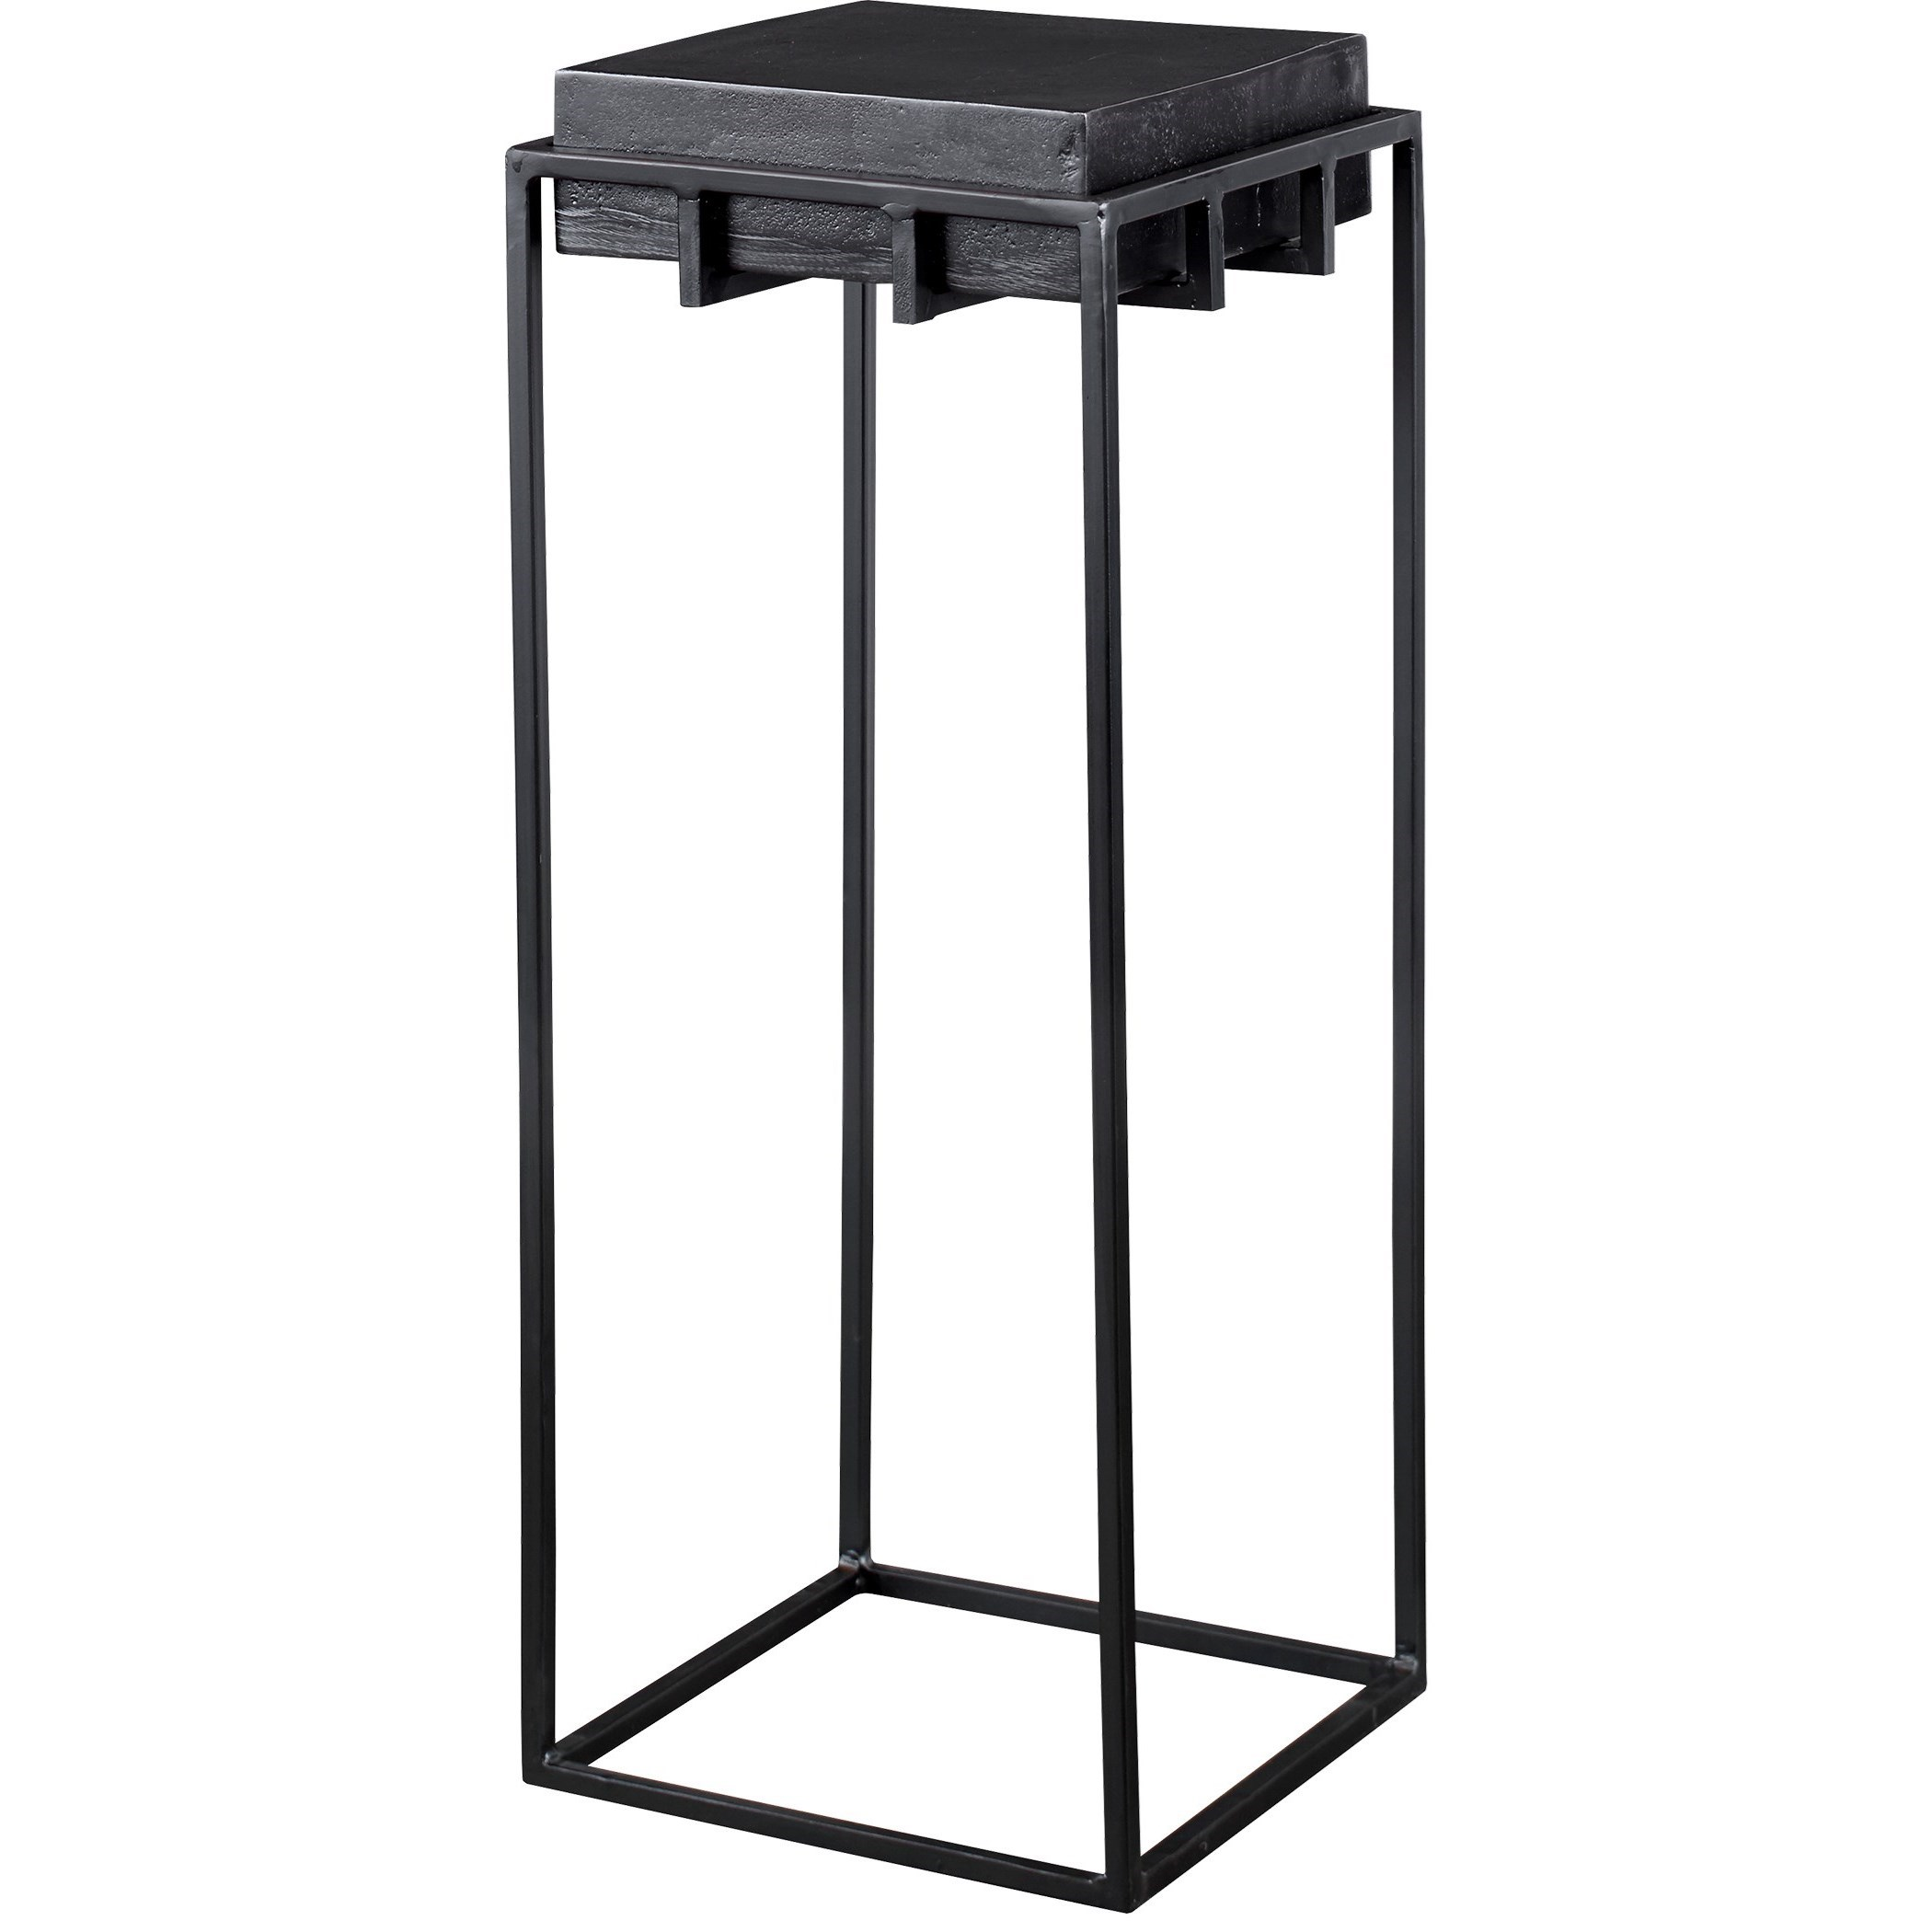 Accent Furniture - Occasional Tables Telone Black Small Pedestal by Uttermost at Mueller Furniture